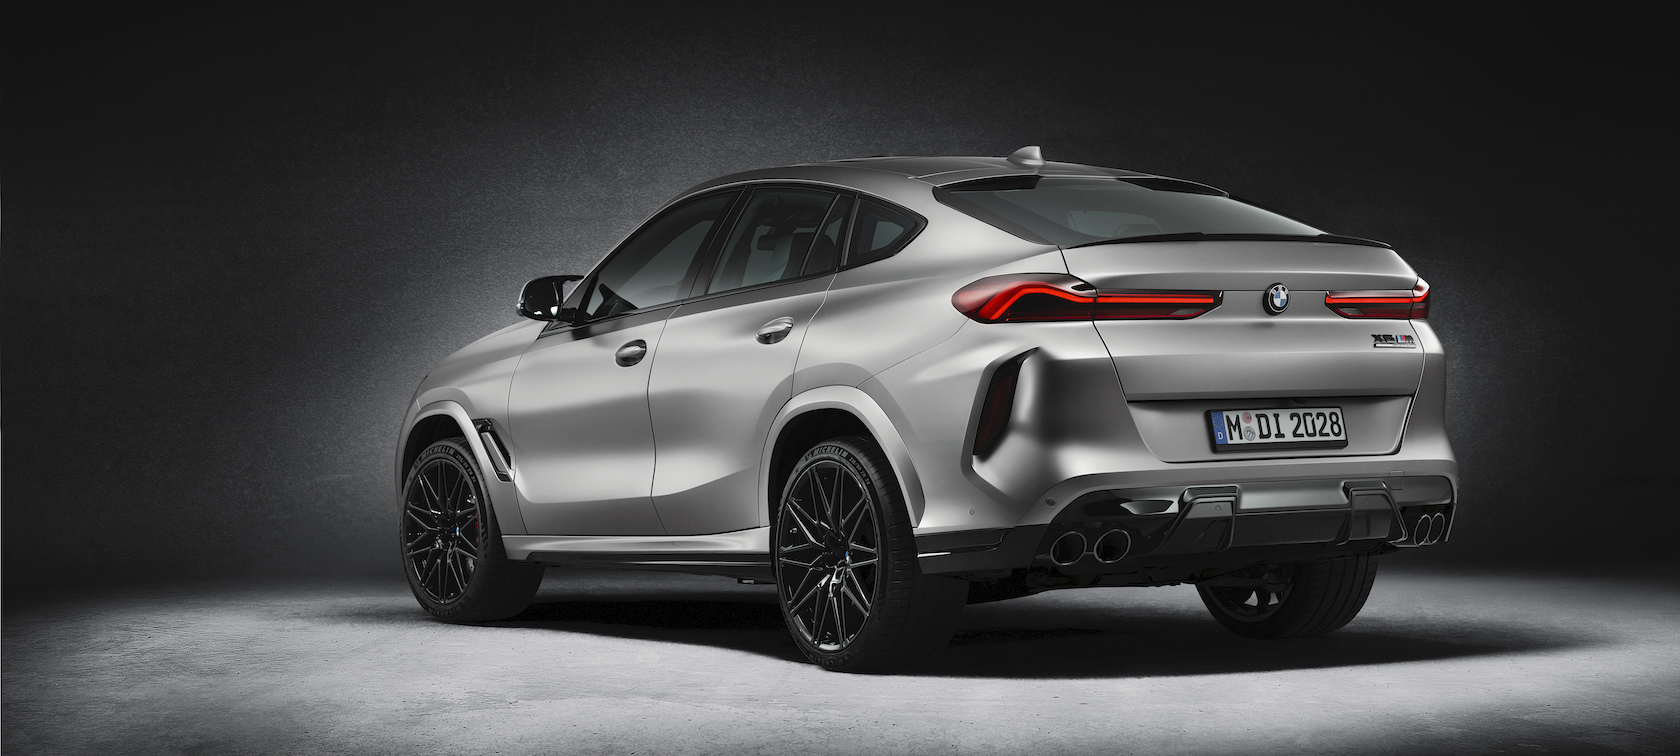 Bmw X5 M Competition And Bmw X6 M Competition First Edition